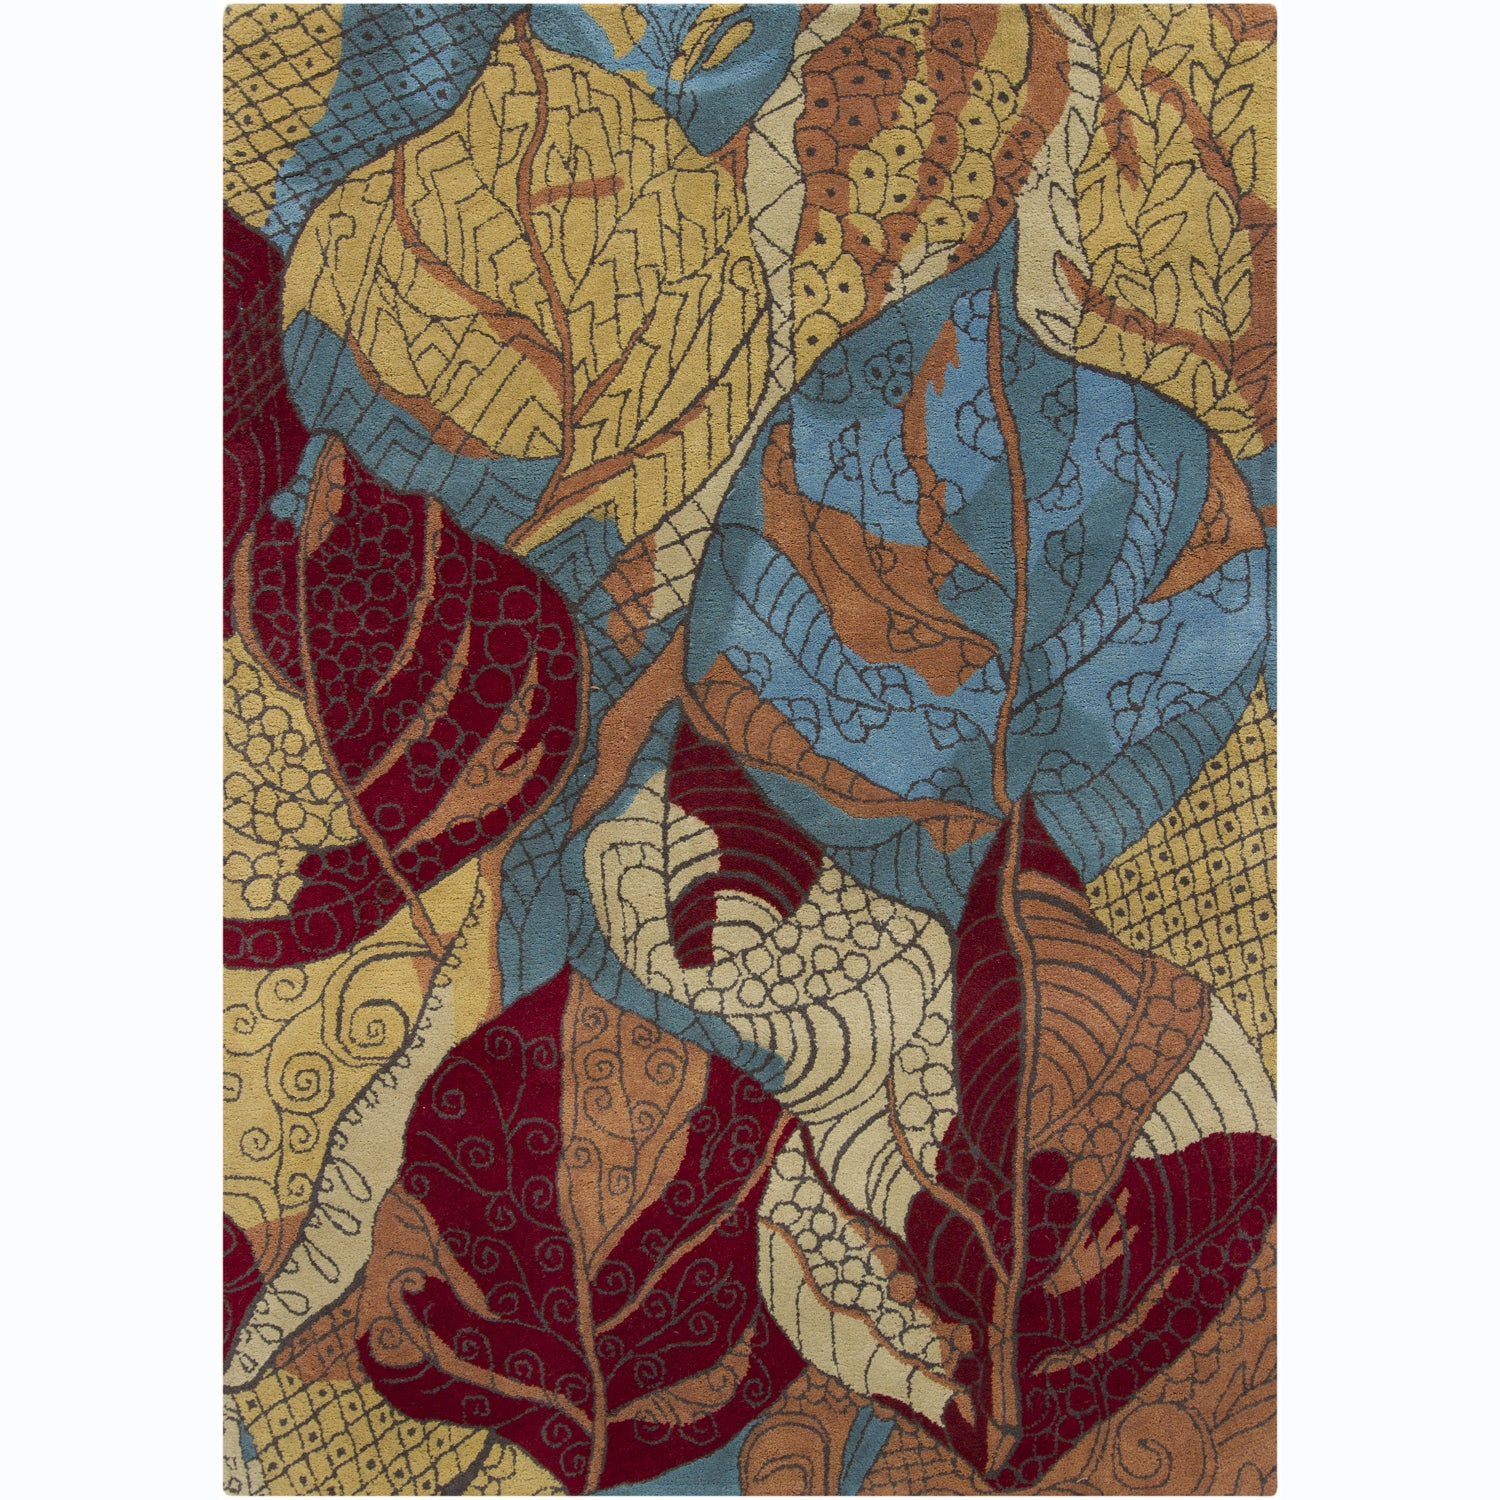 Artist's Loom Hand-tufted Transitional Floral Wool Rug (5'x7') - multi - 5' x 7'